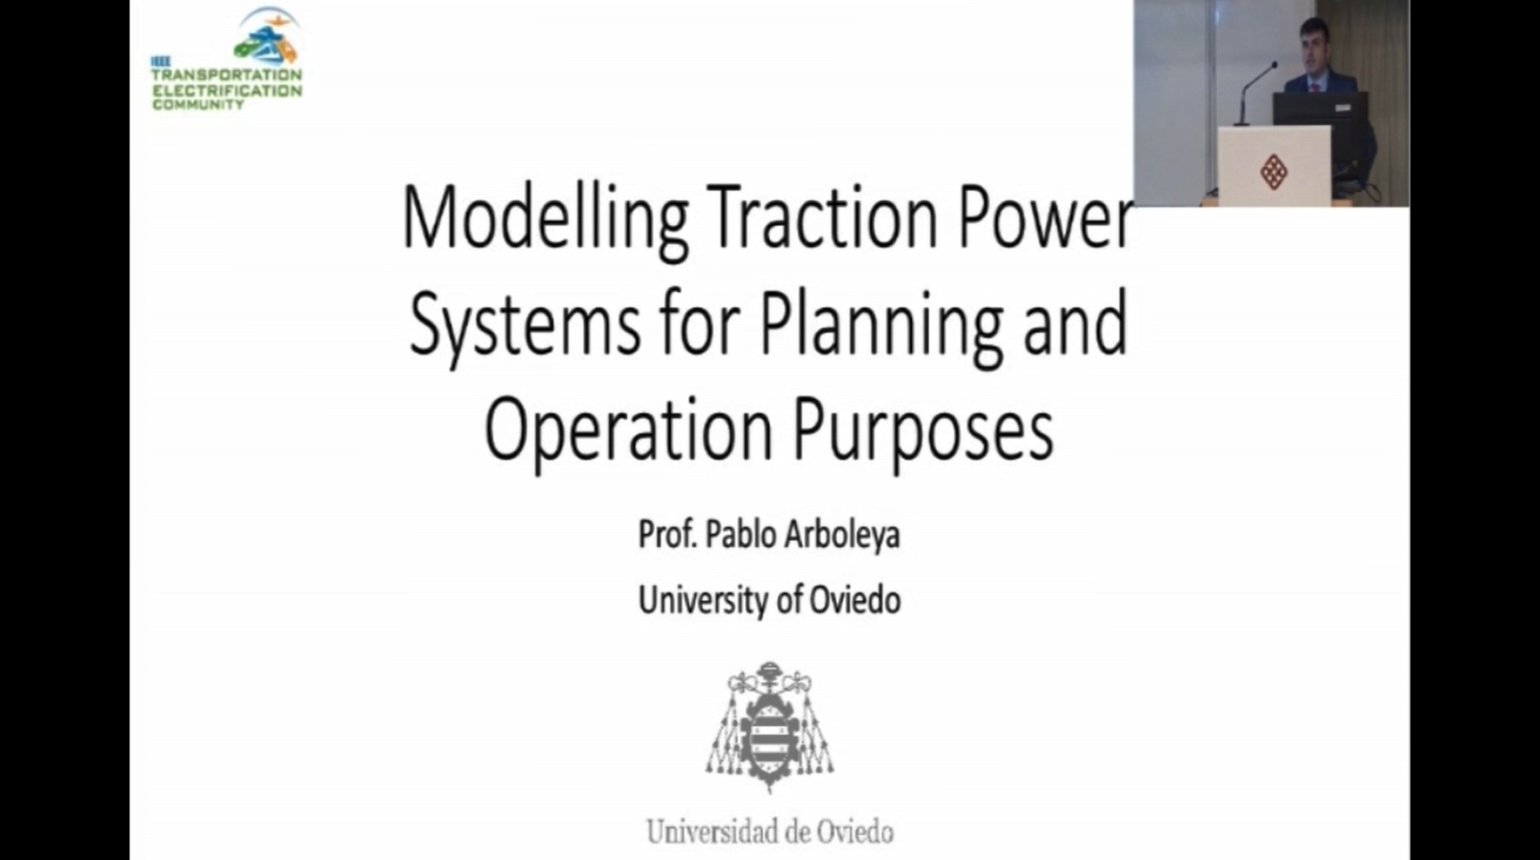 Modelling Traction Power Systems for Planning and Operation Purposes